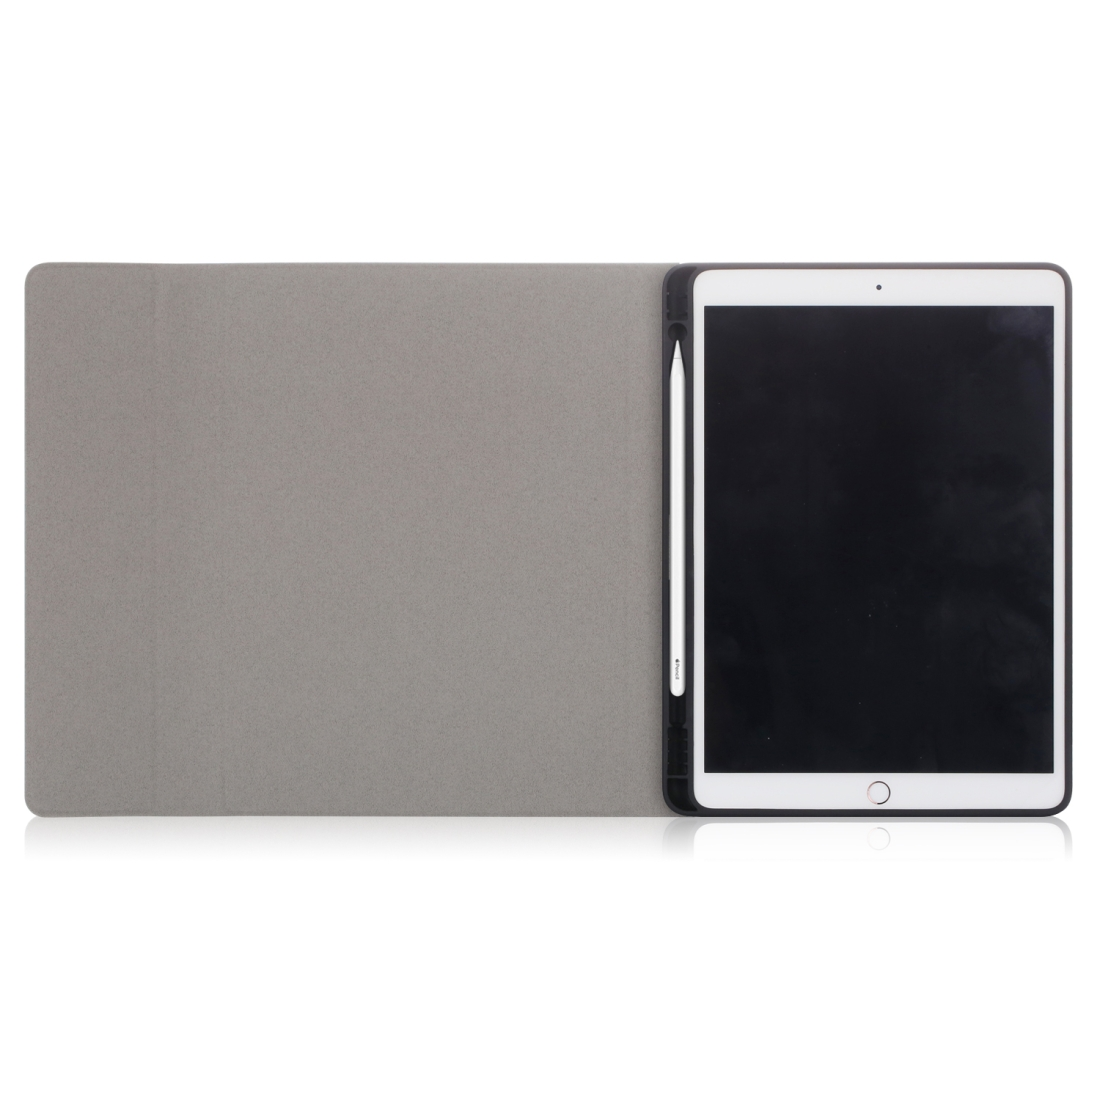 iPad Air 2 Case For iPad Air /Air 2 (2019), Leather Case Without Keyboard (Black)